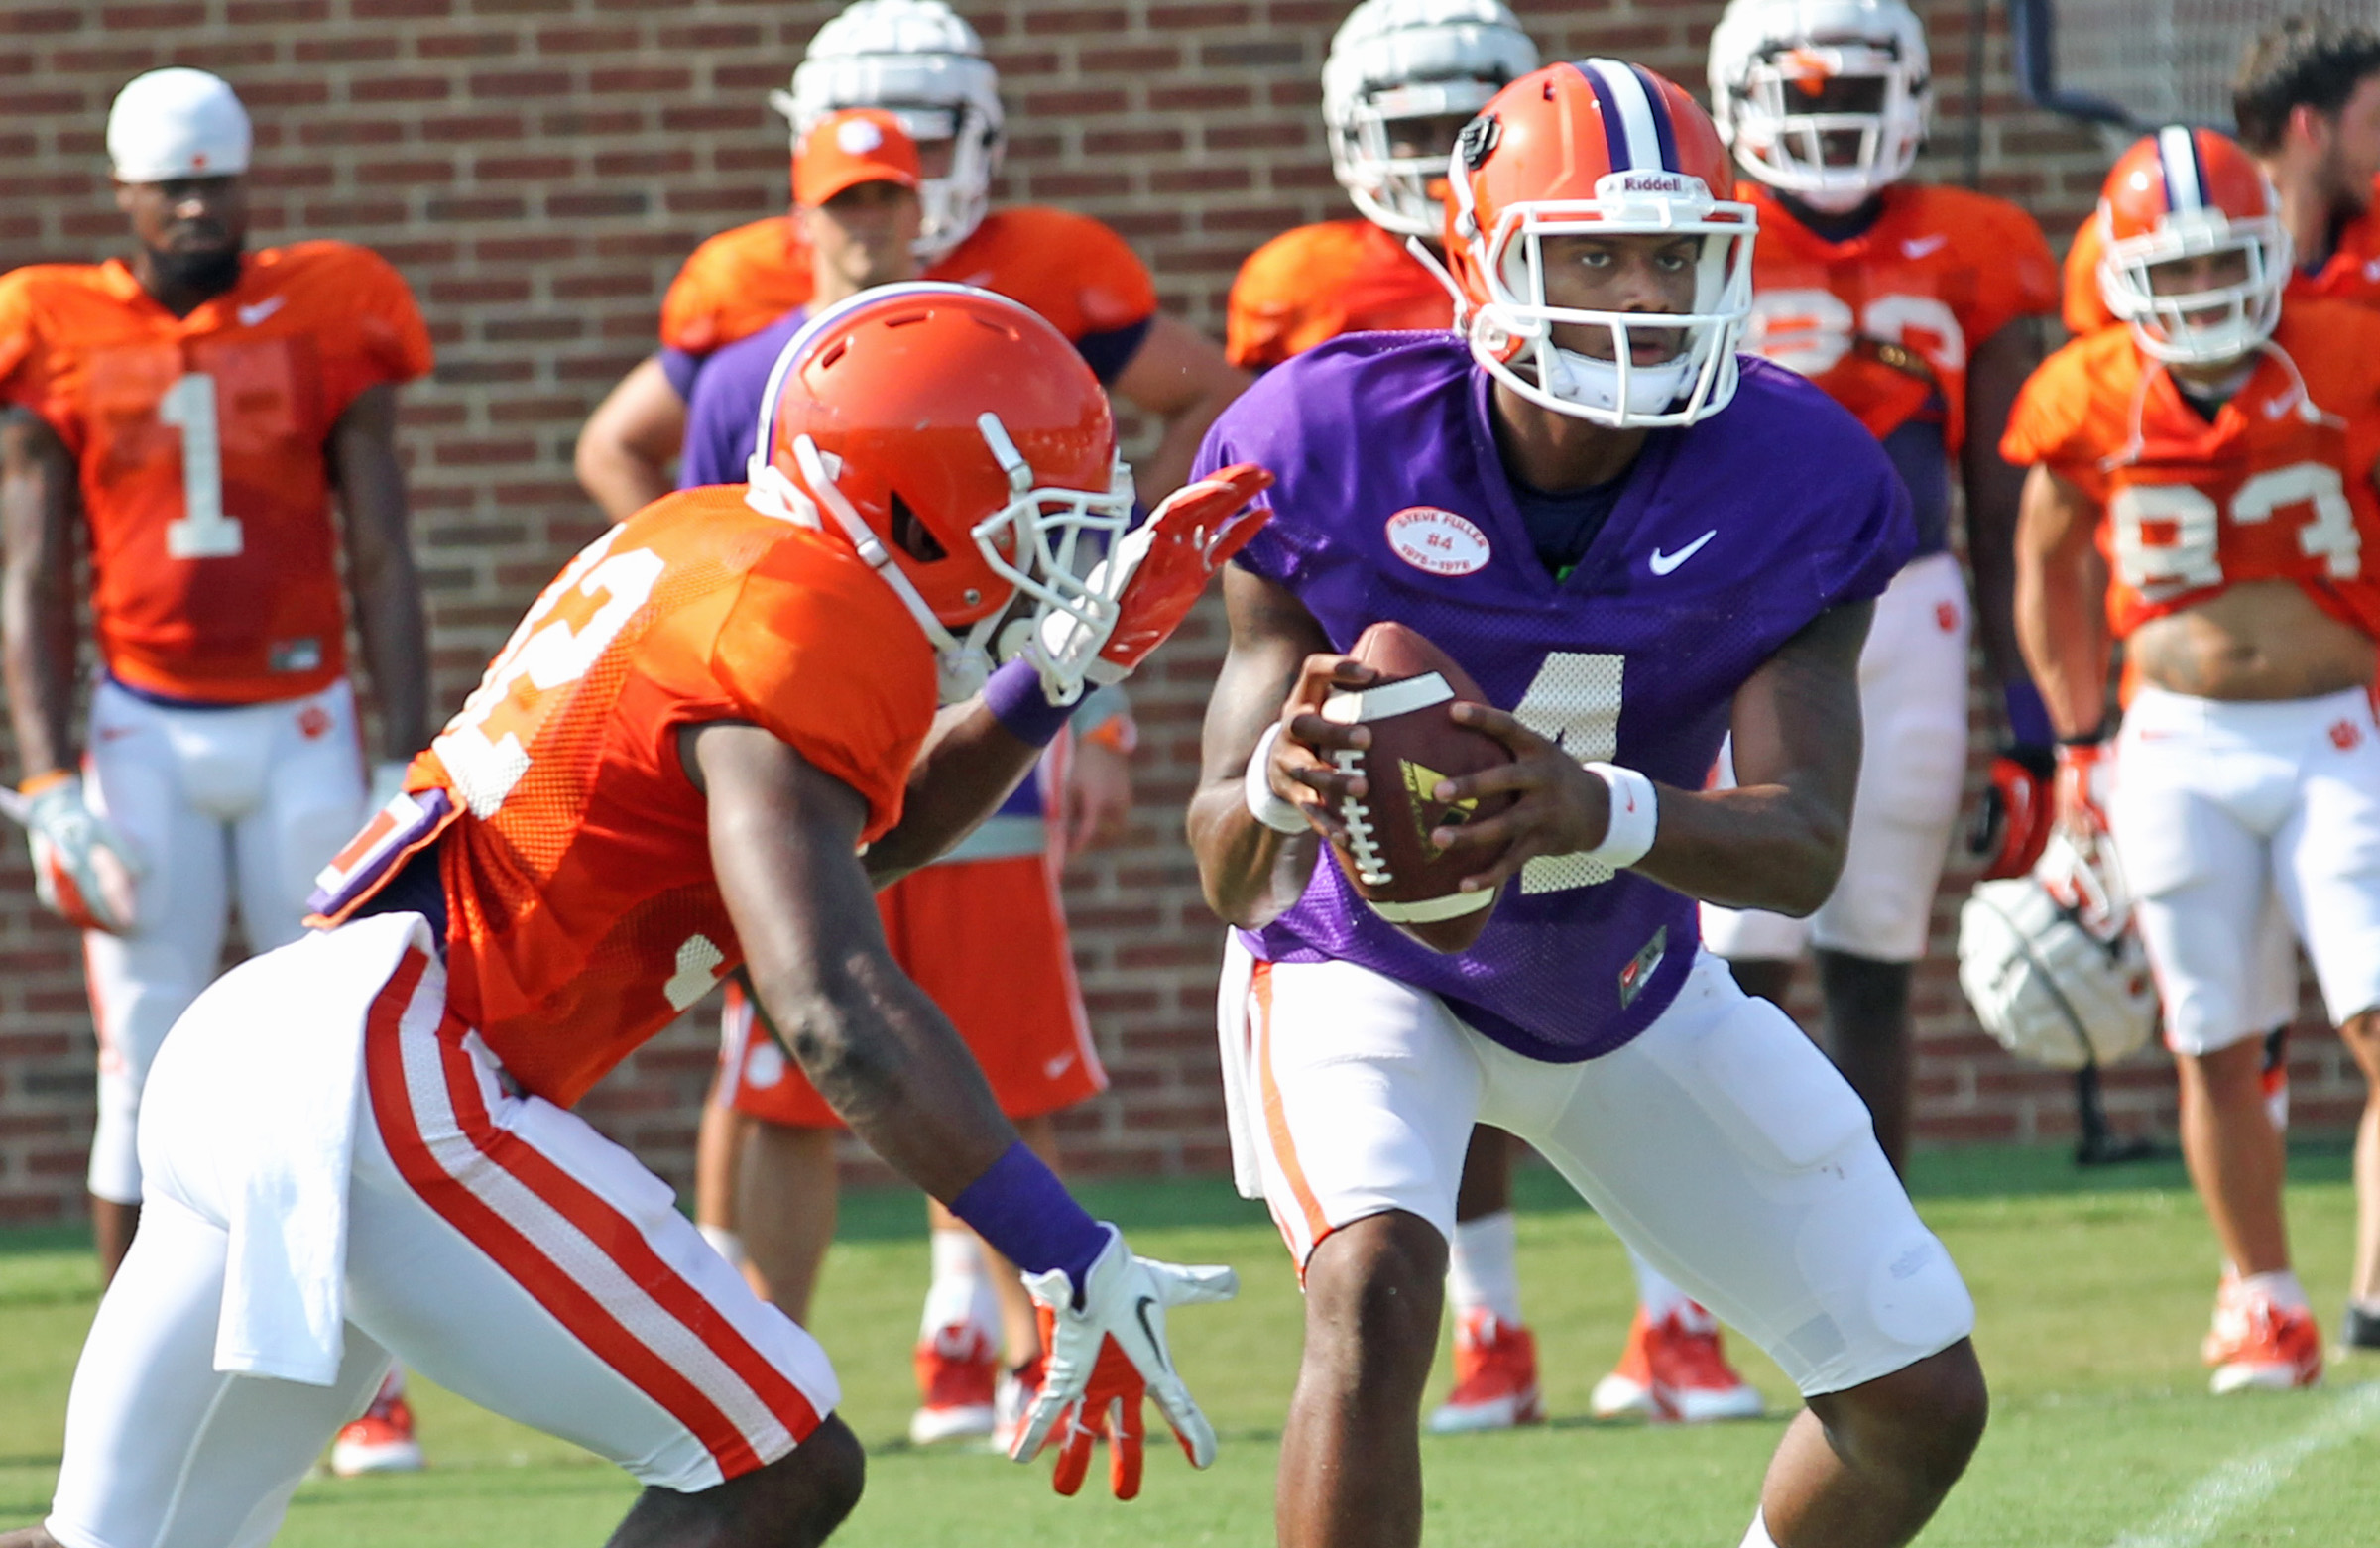 Clemson quarterback Deshaun Watson, right, fakes a hand-off to running back C.J. Davidson during the Tigers' NCAA college football practice on Wednesday, Aug. 6, 2014 in Clemson, S.C